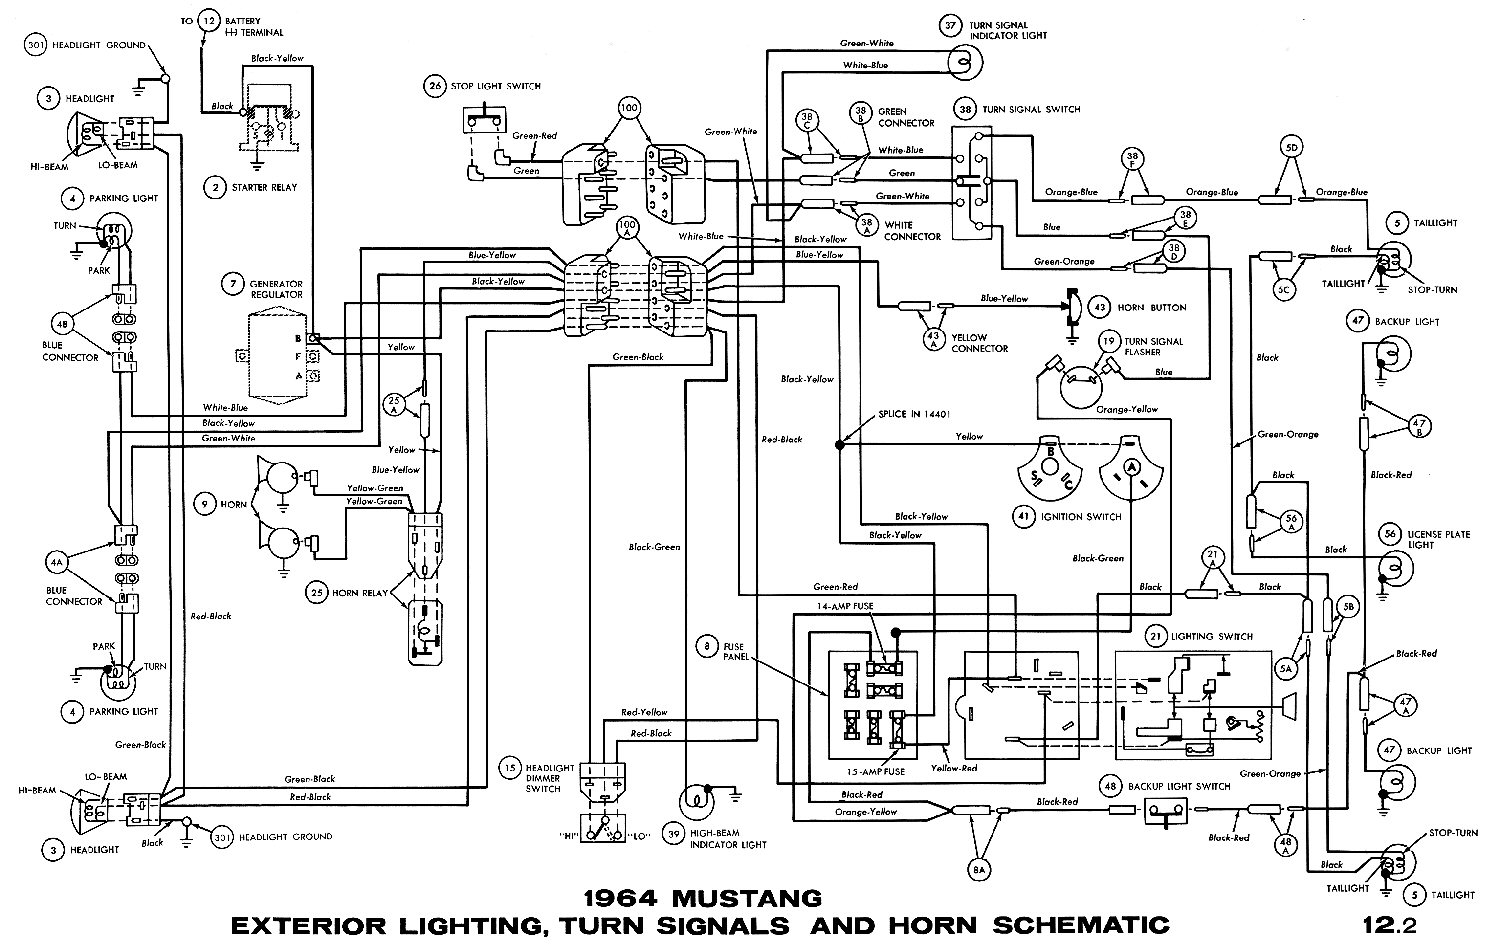 65 Mustang Wiring Schematic Library Pentium 2 Block Diagram Pdf 1964 Diagrams Average Joe Restoration Alternator 64